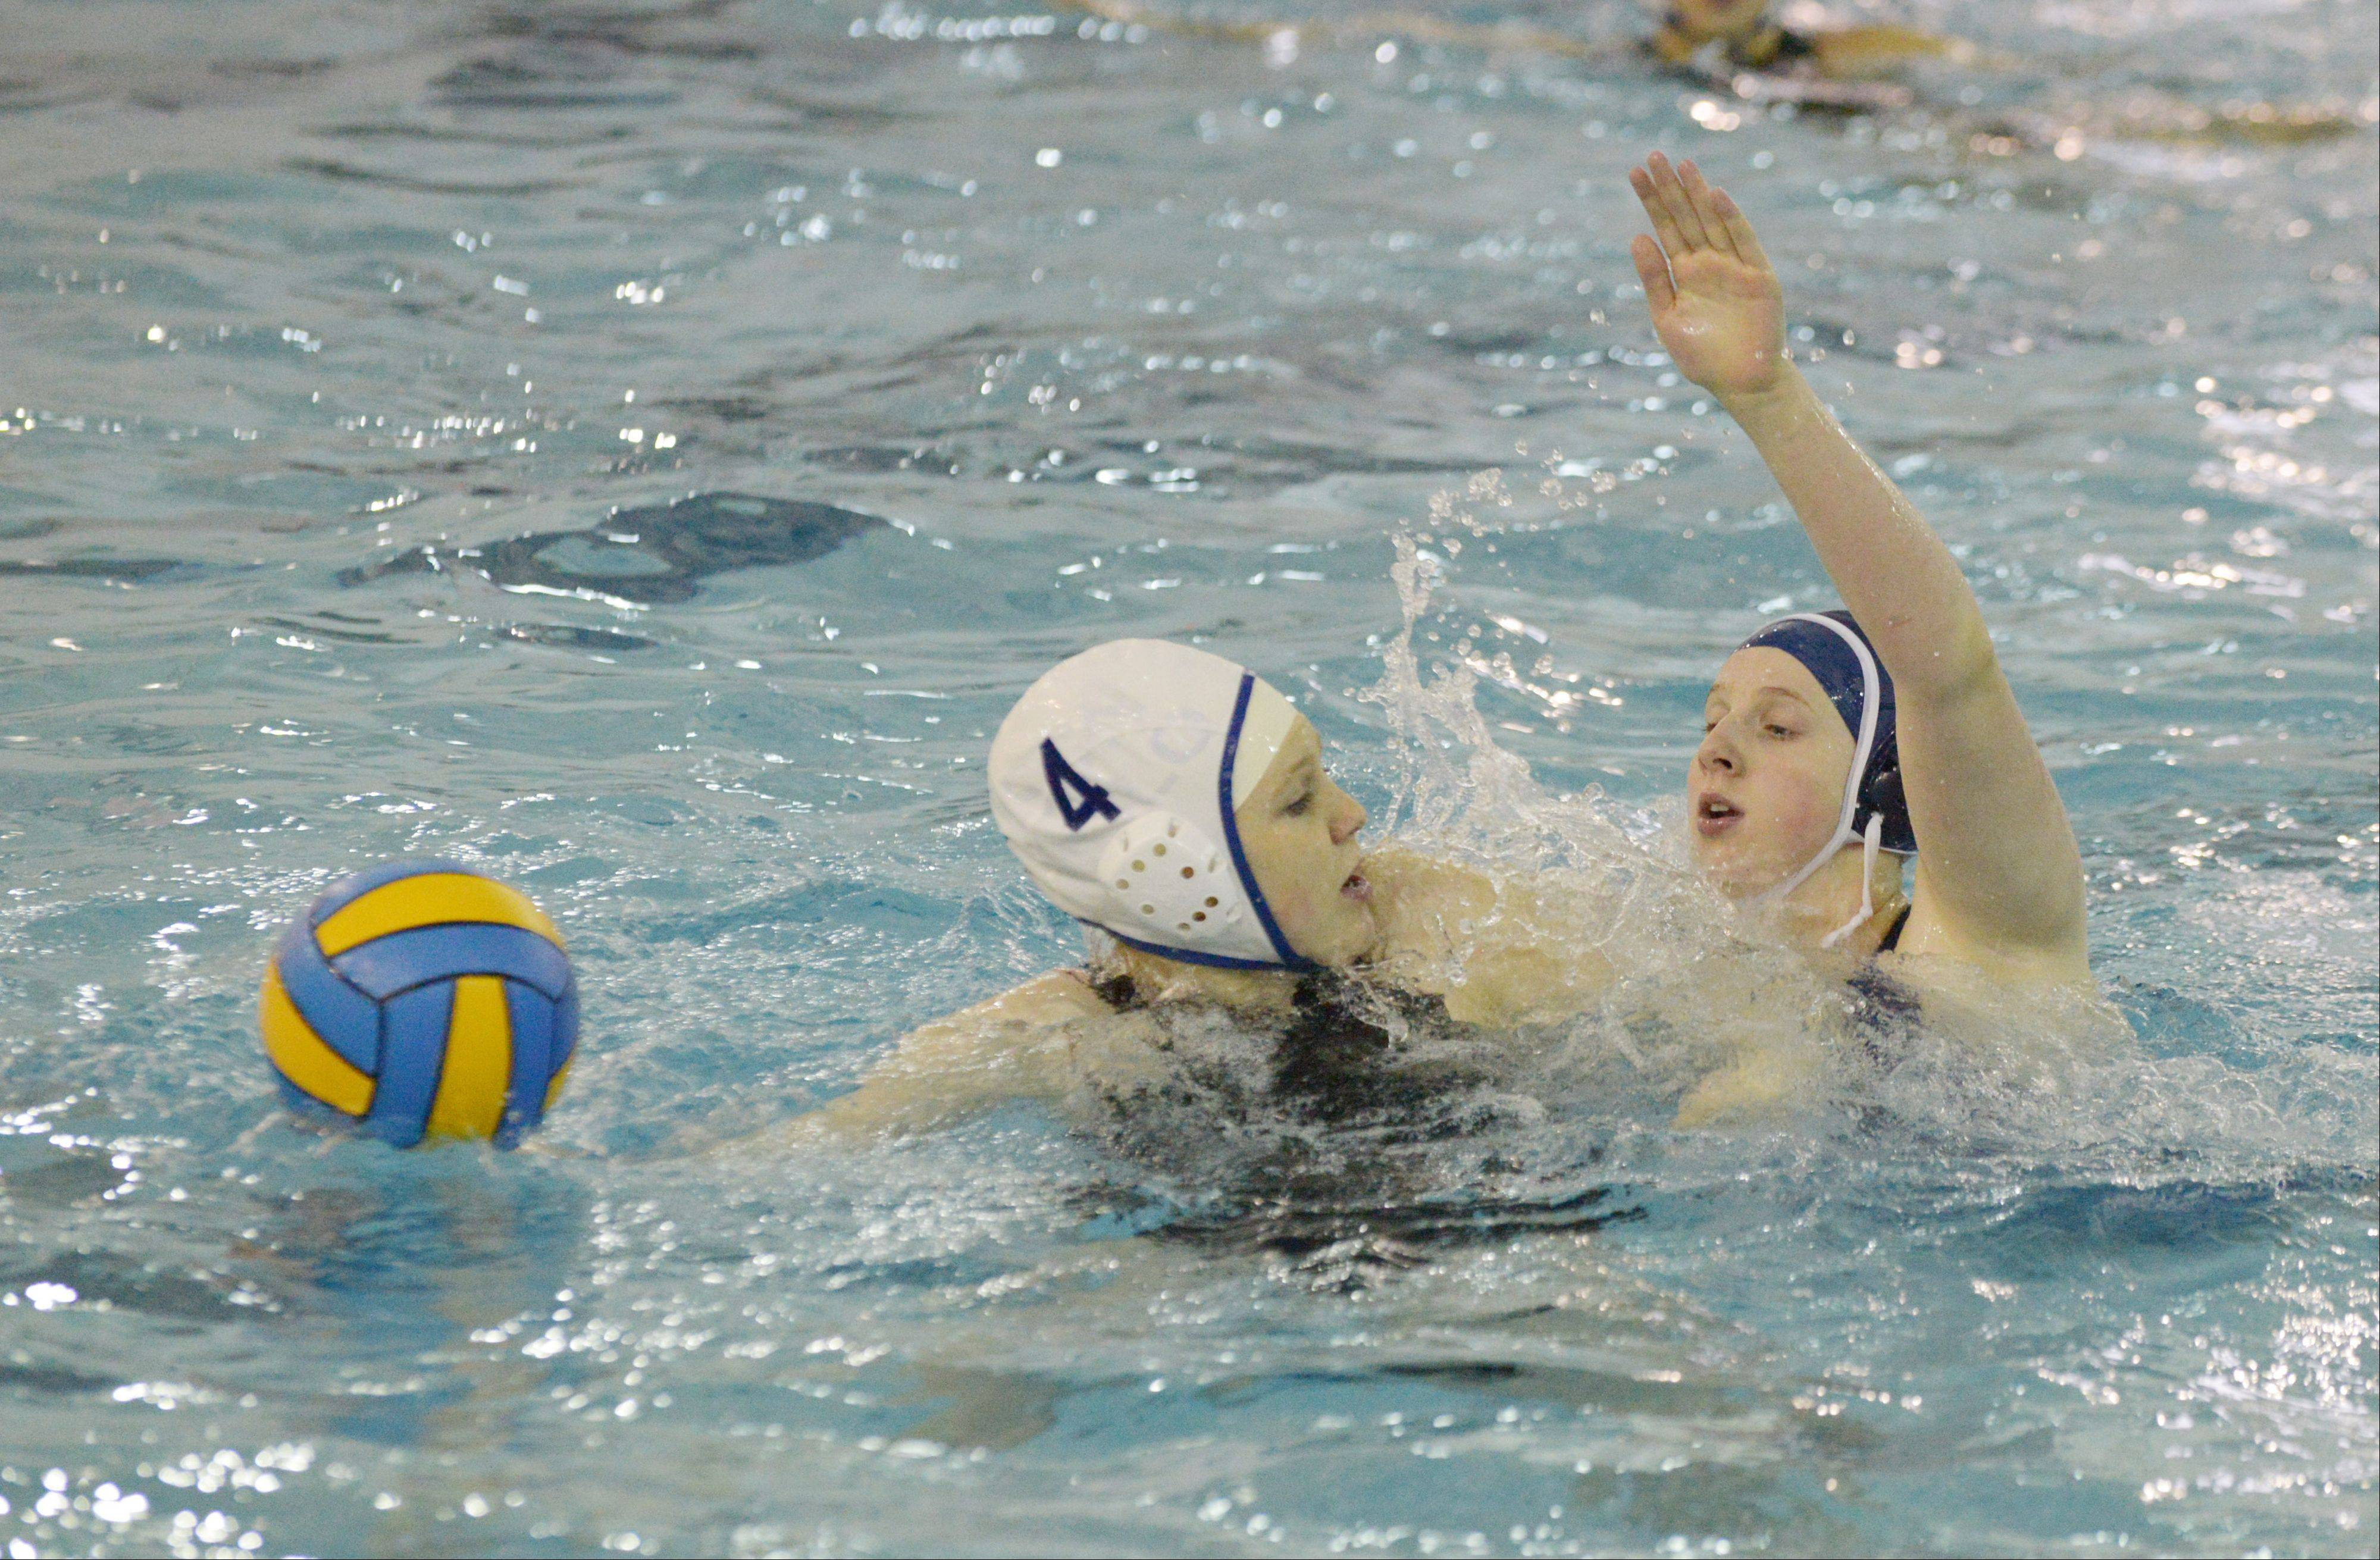 Sarah Stern of St. Charles North looks to pass the ball over Caitlin Holzer of Naperville North. This took place during the St. Charles North at Naperville North girls water polo game Wednesday.